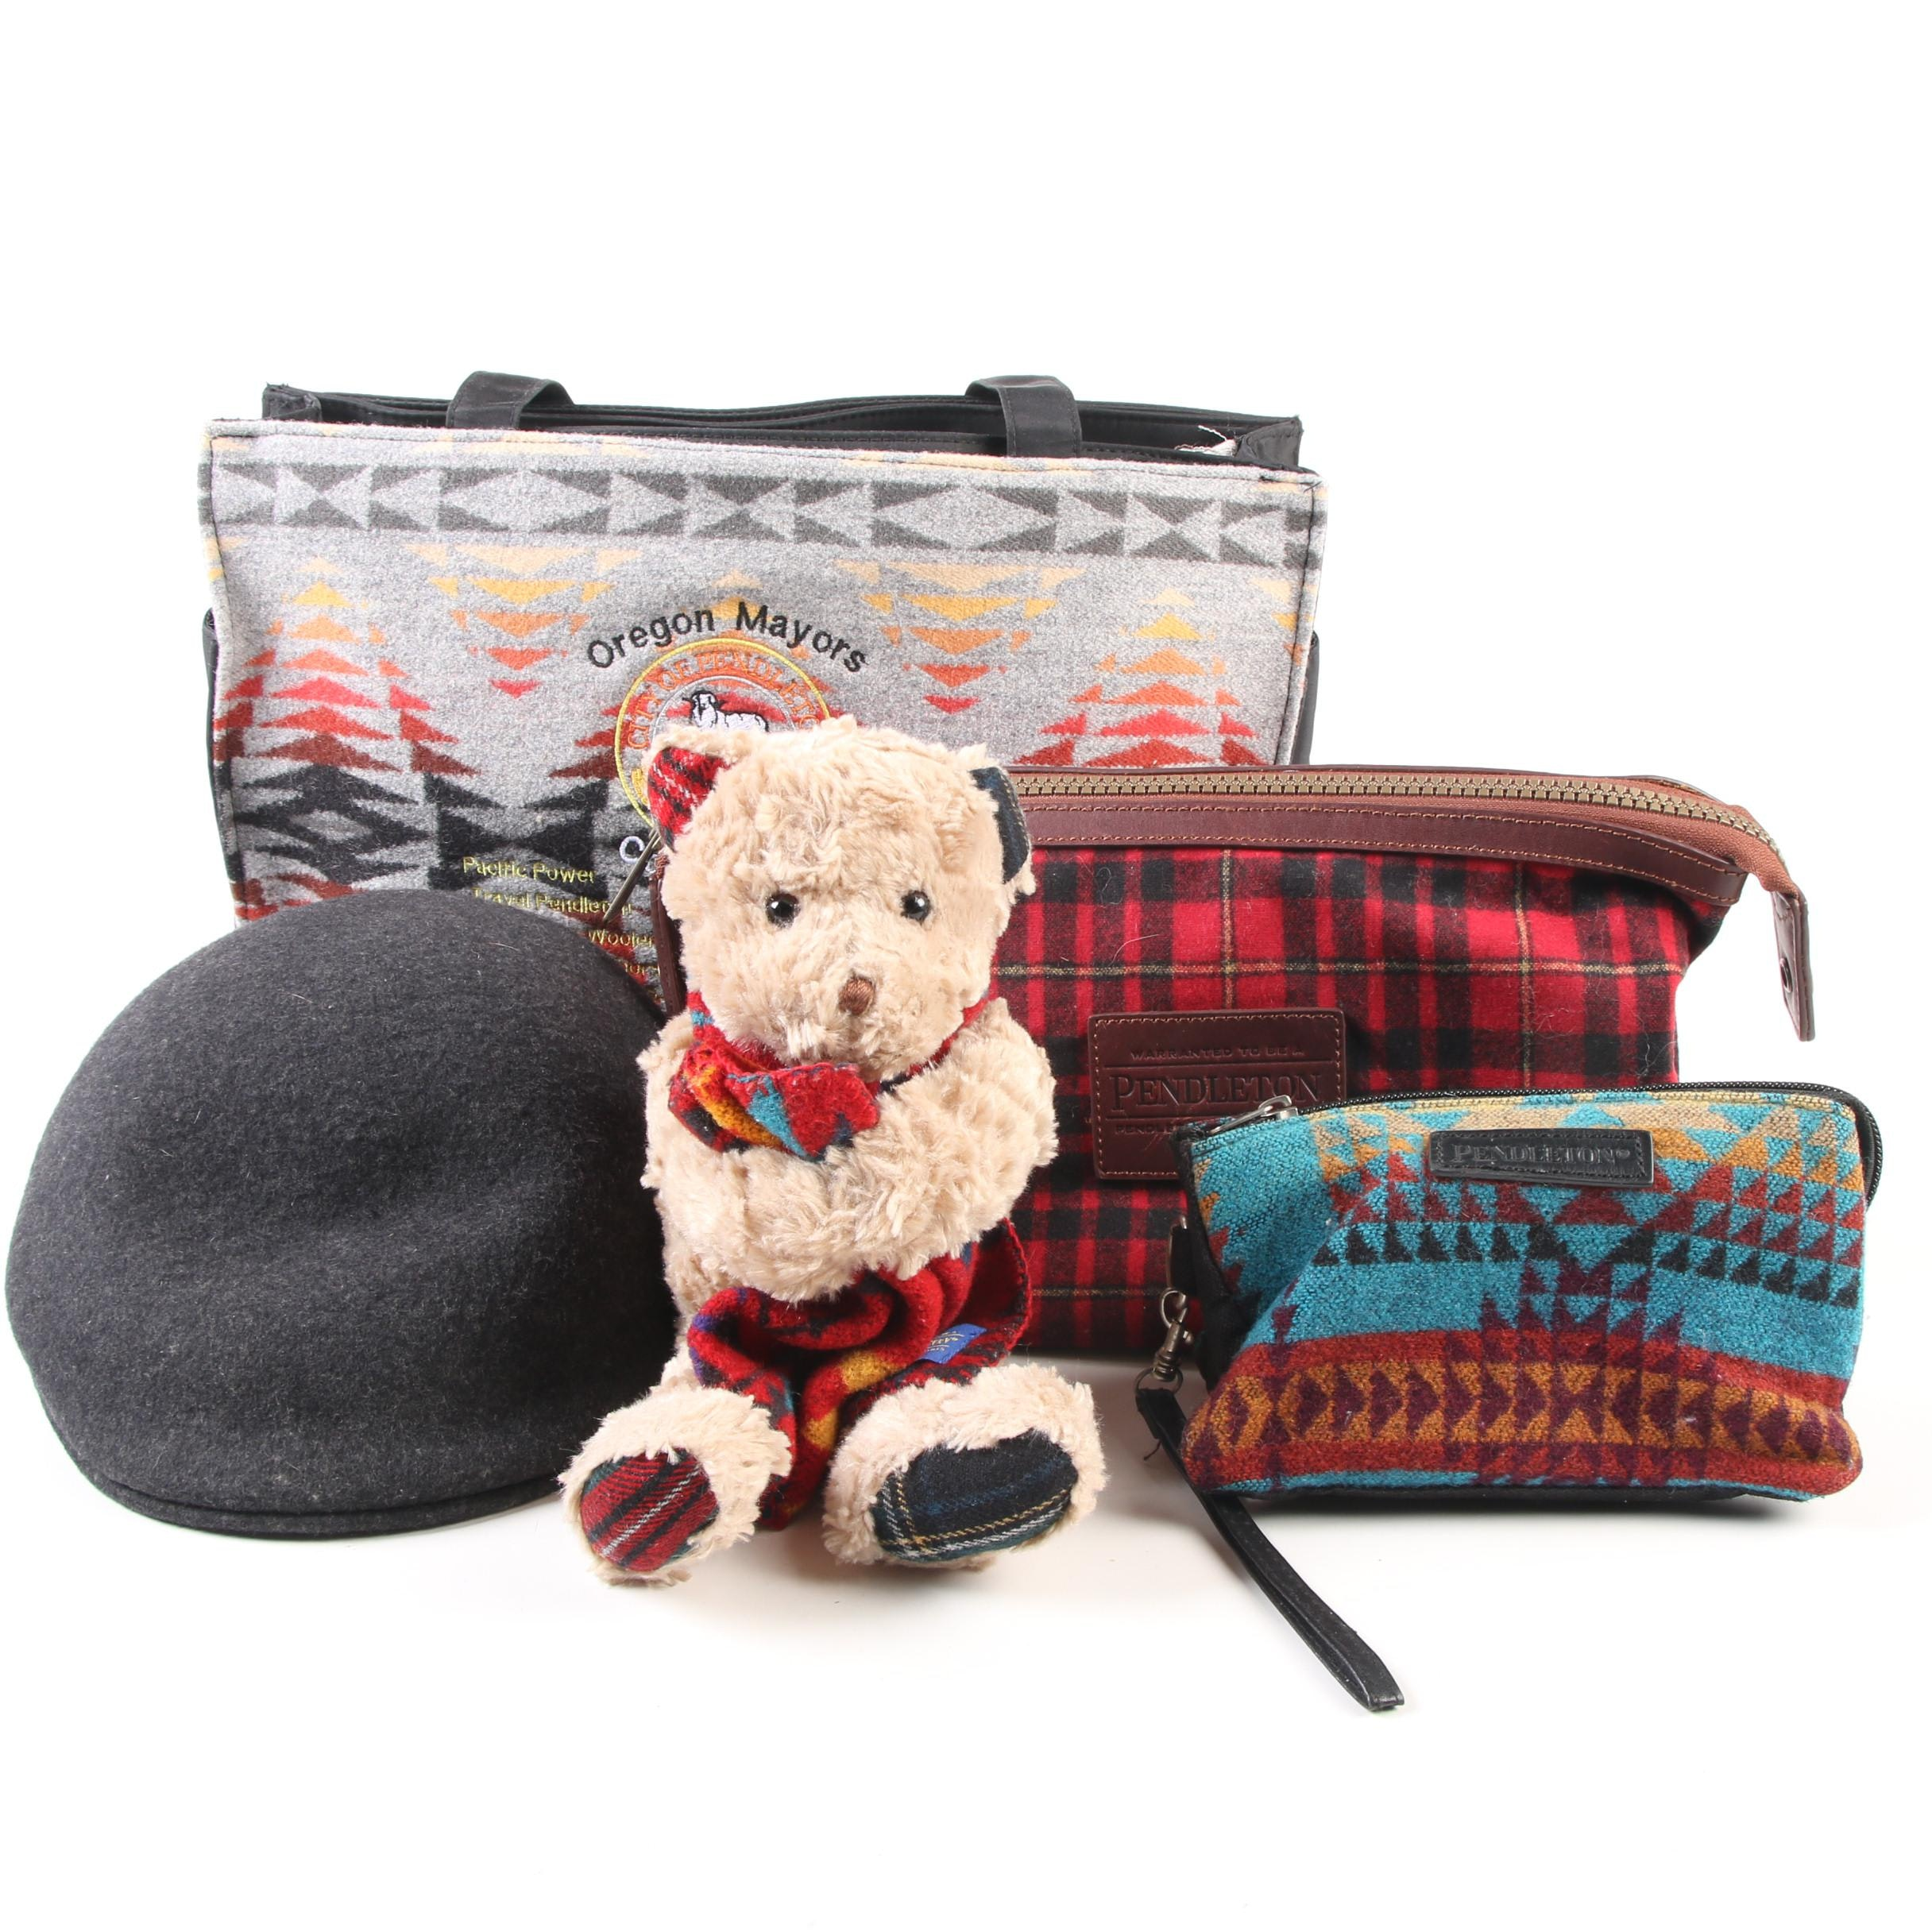 Pendleton Tote, Bear, Cuffley Hat and Accessory Bags